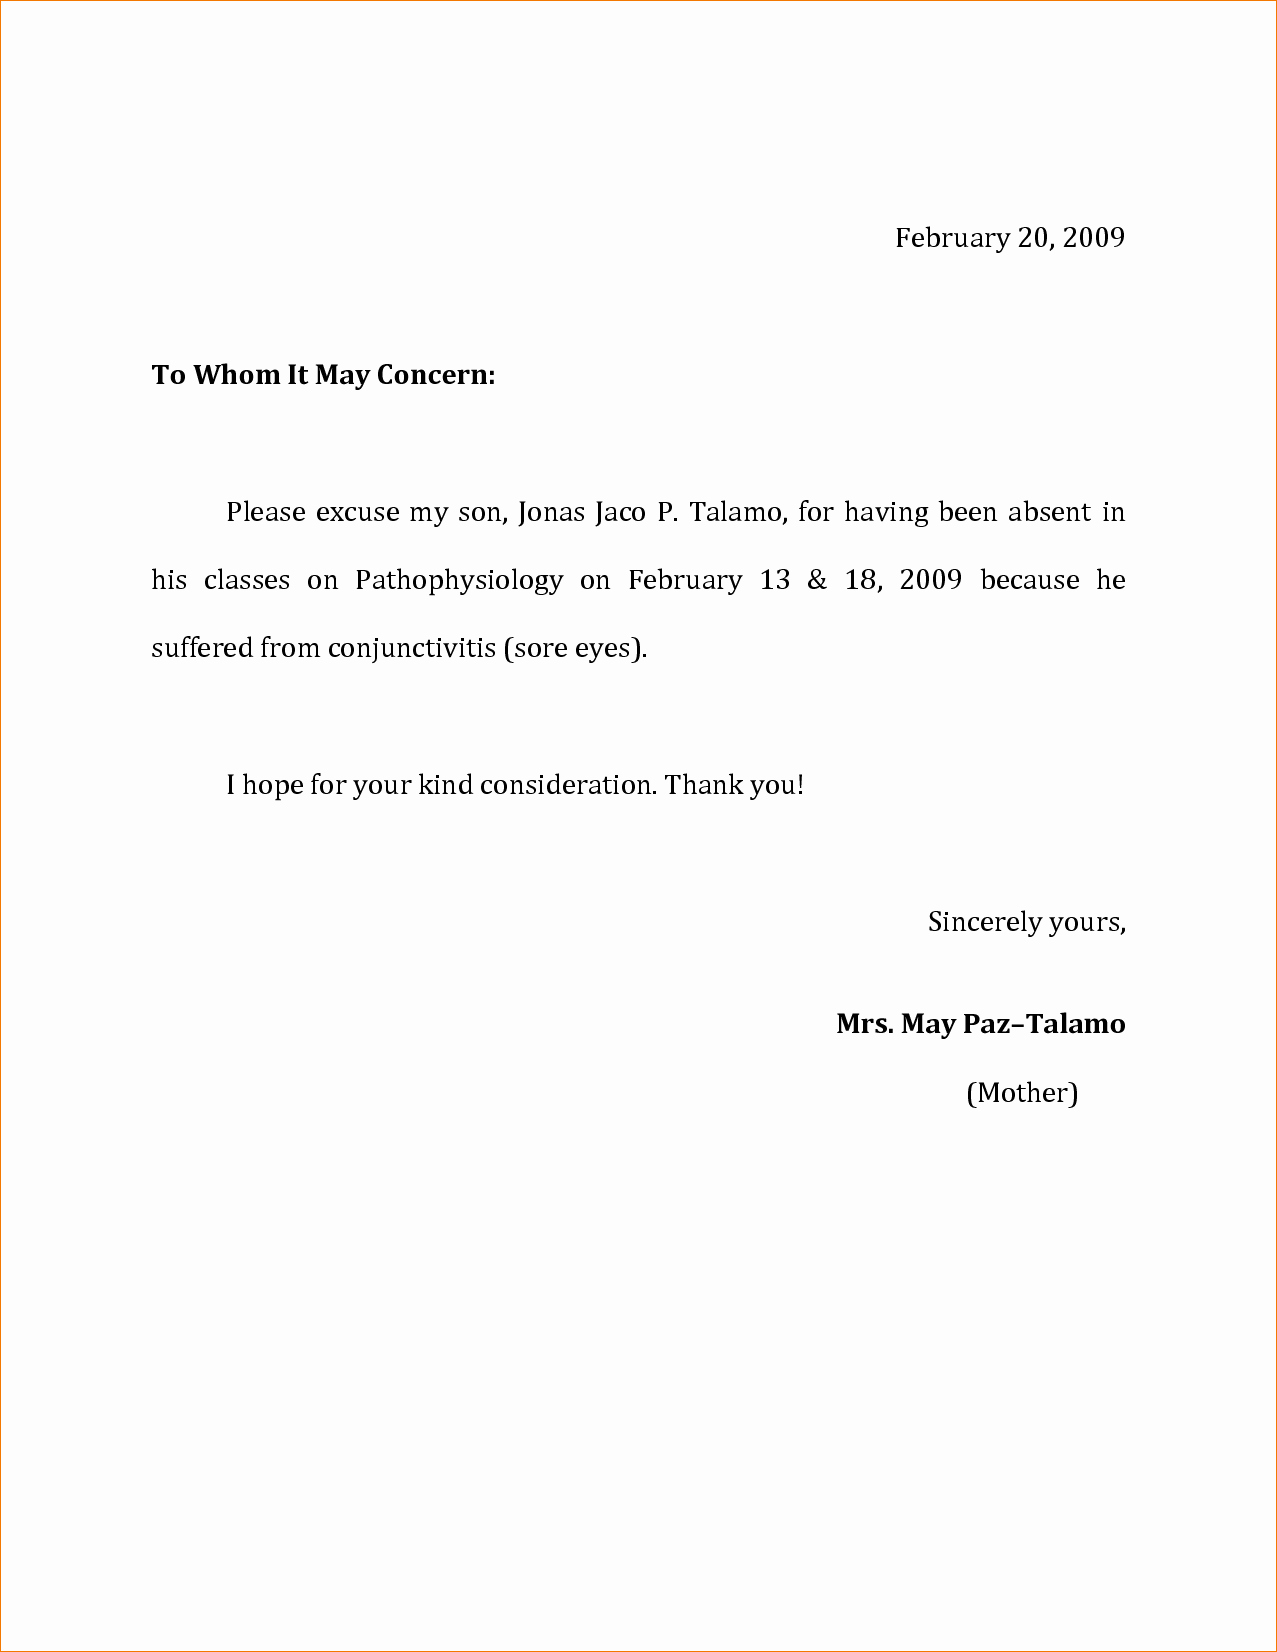 Absence From School Letter Sample Elegant 11 Absence Excuse Letteragenda Template Sample